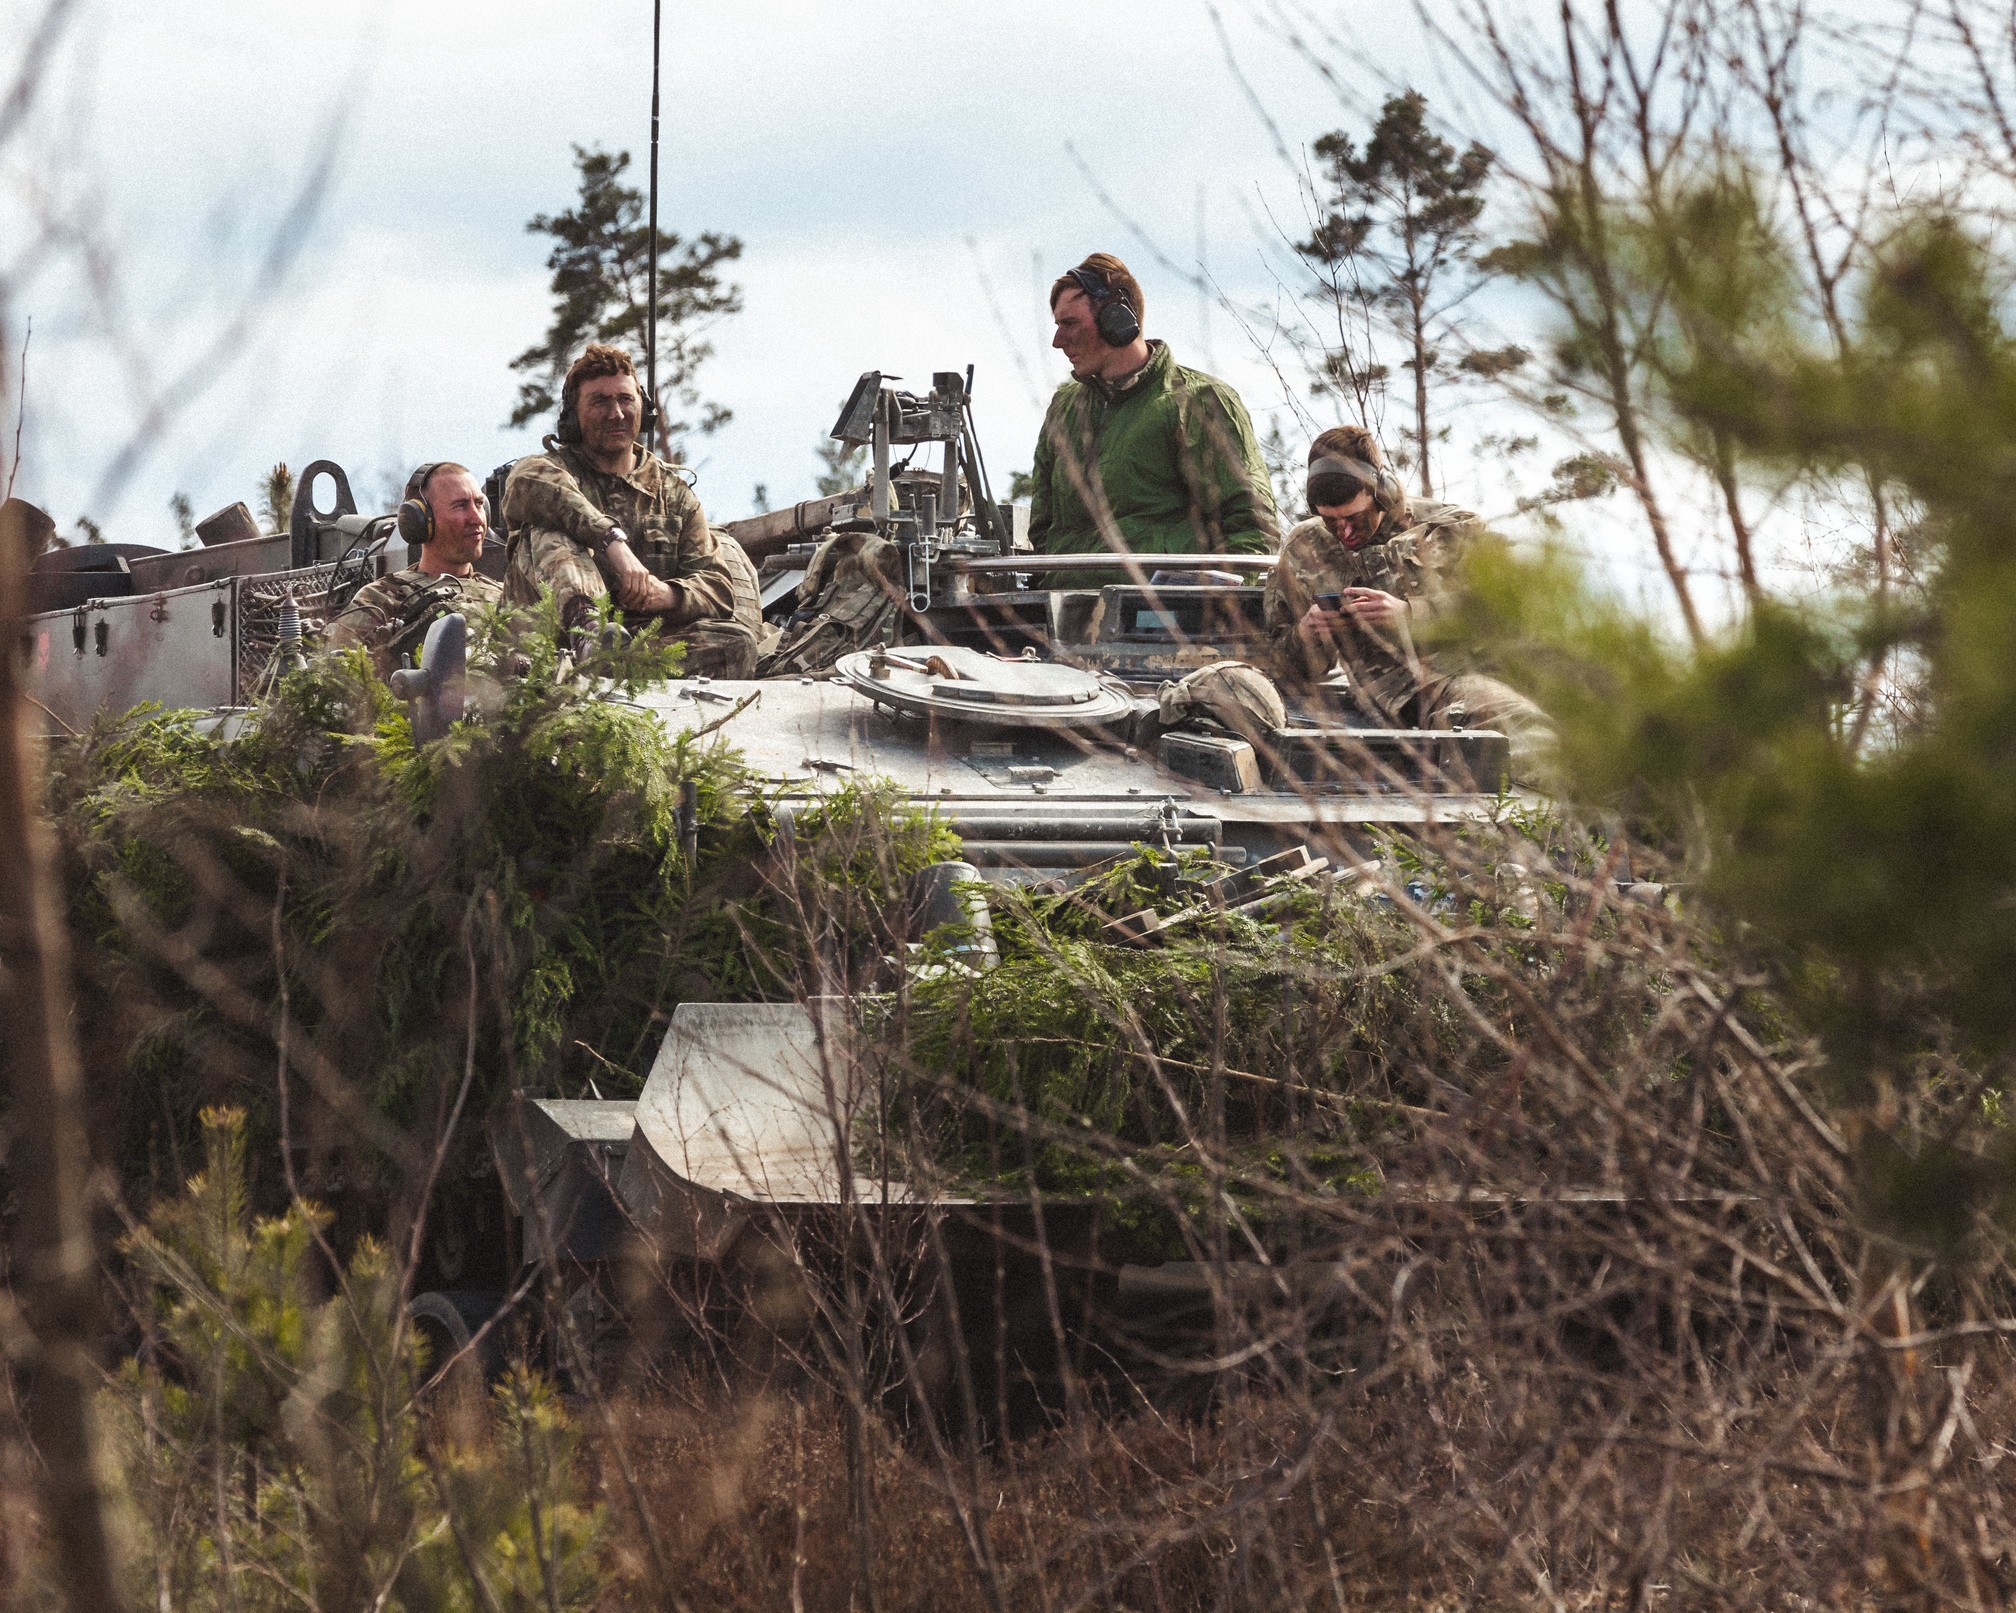 NATO's Enhanced Forward Presence Battlegroup Estonia Participated in Modified Exercise Spring Storm